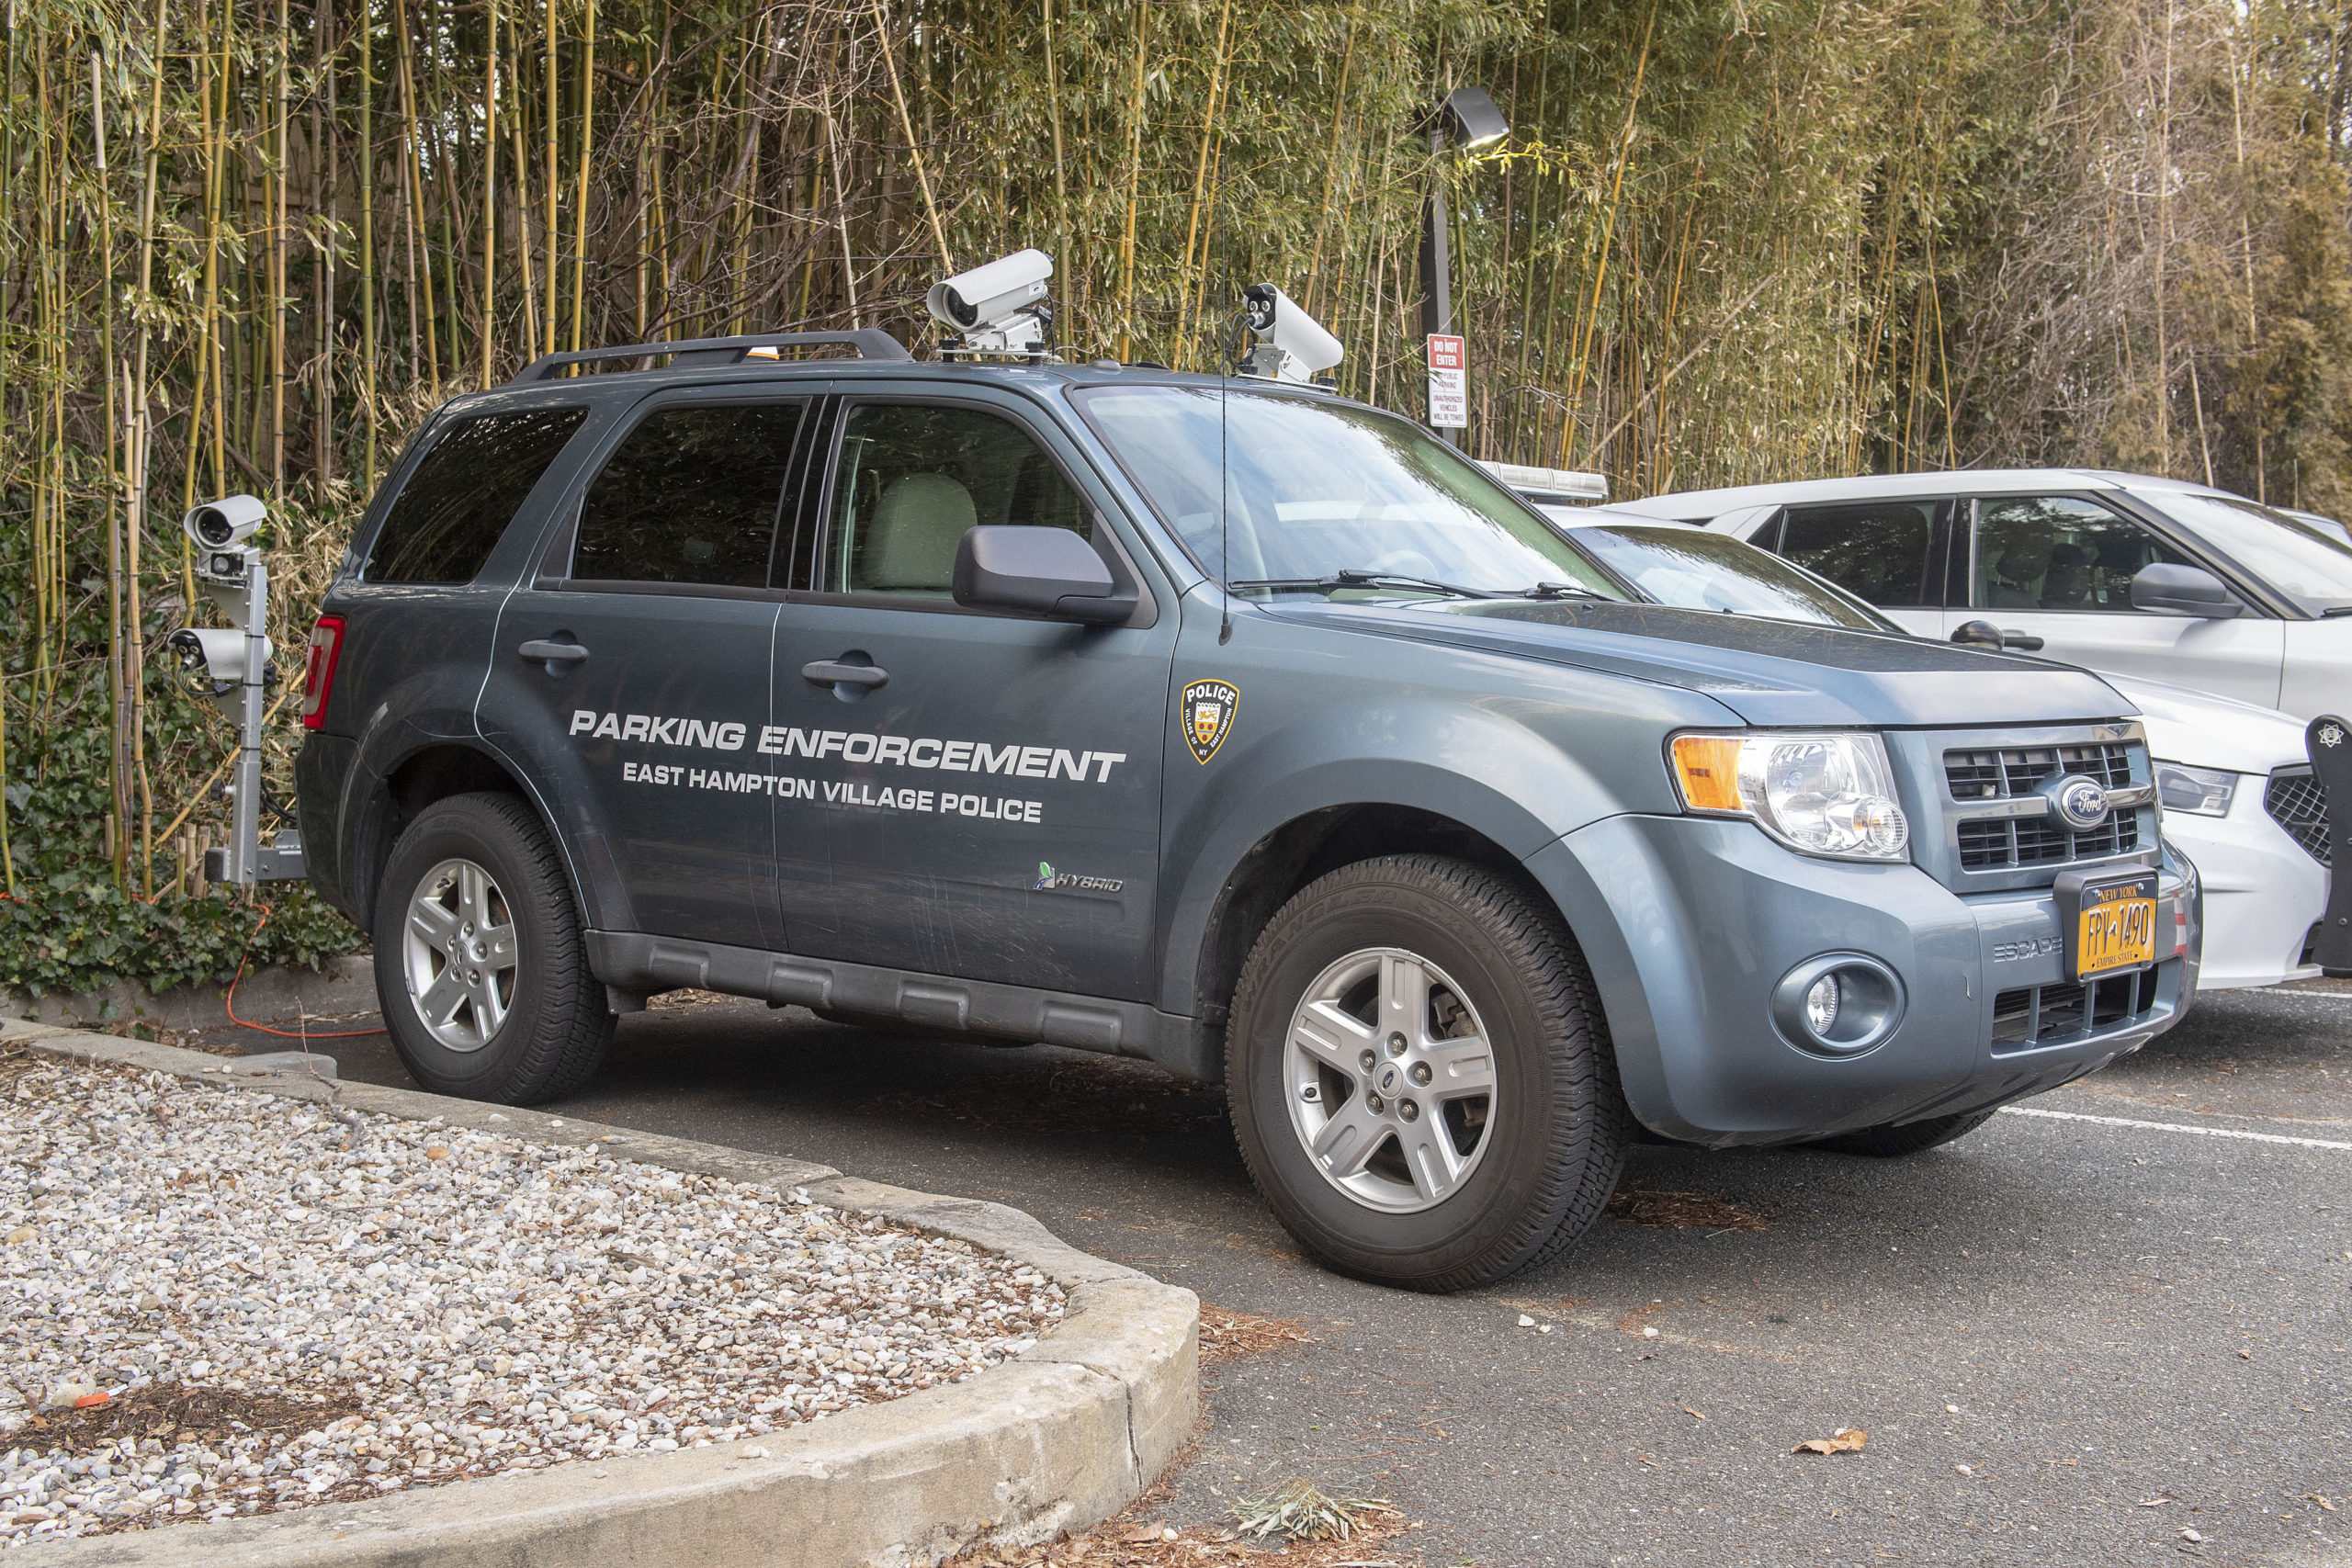 The East Hampton Village parking enforcement vehicle. The village is being sued by the company that manufactures the license plate scanners mounted on the truck after it decided to use a different company's scanners.